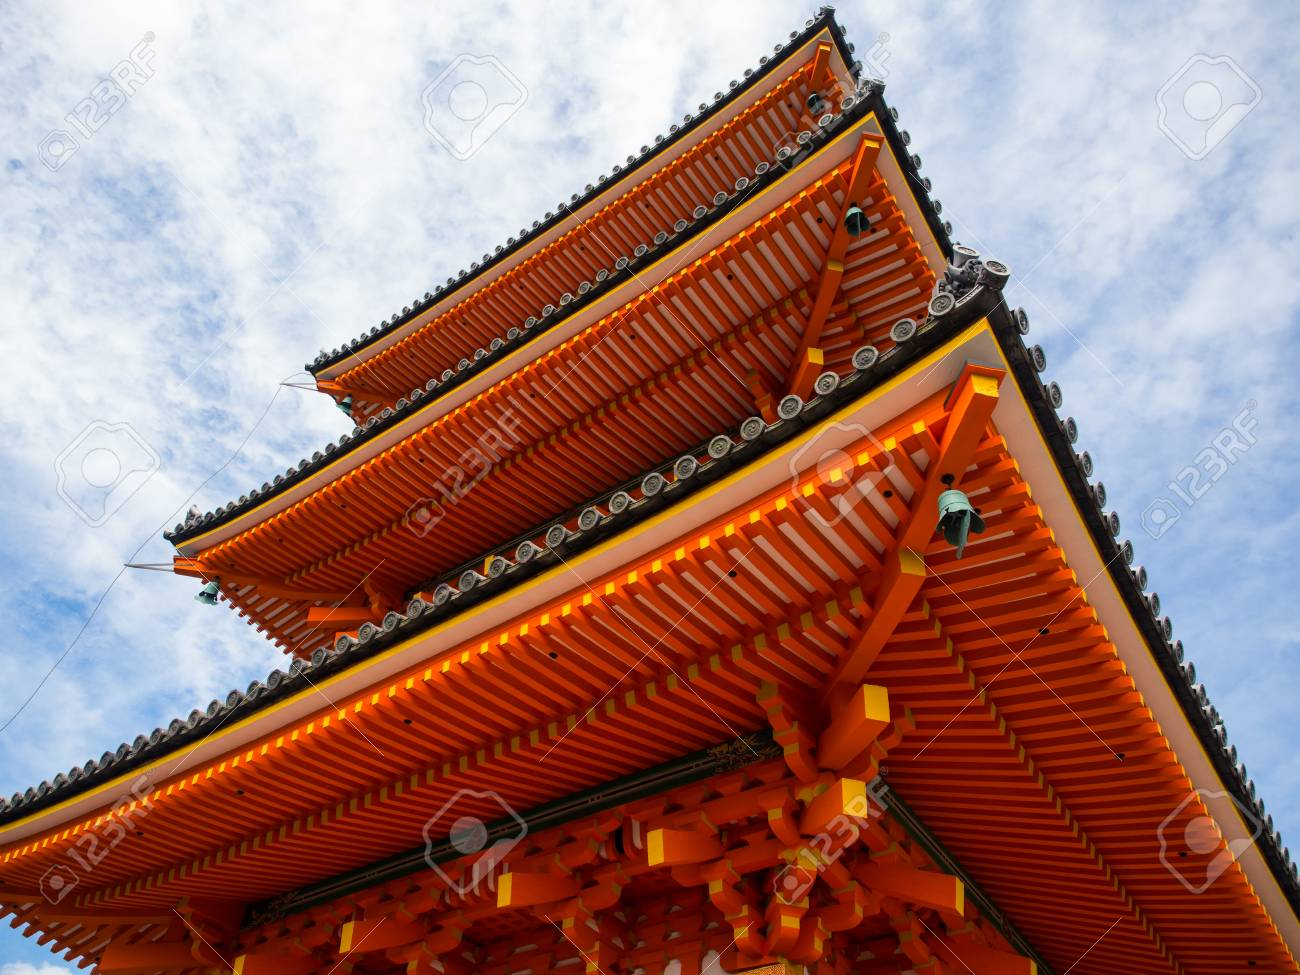 The Nice Design Of Japanese Shrine S Structure The Red Wooden Stock Photo Picture And Royalty Free Image Image 84788475